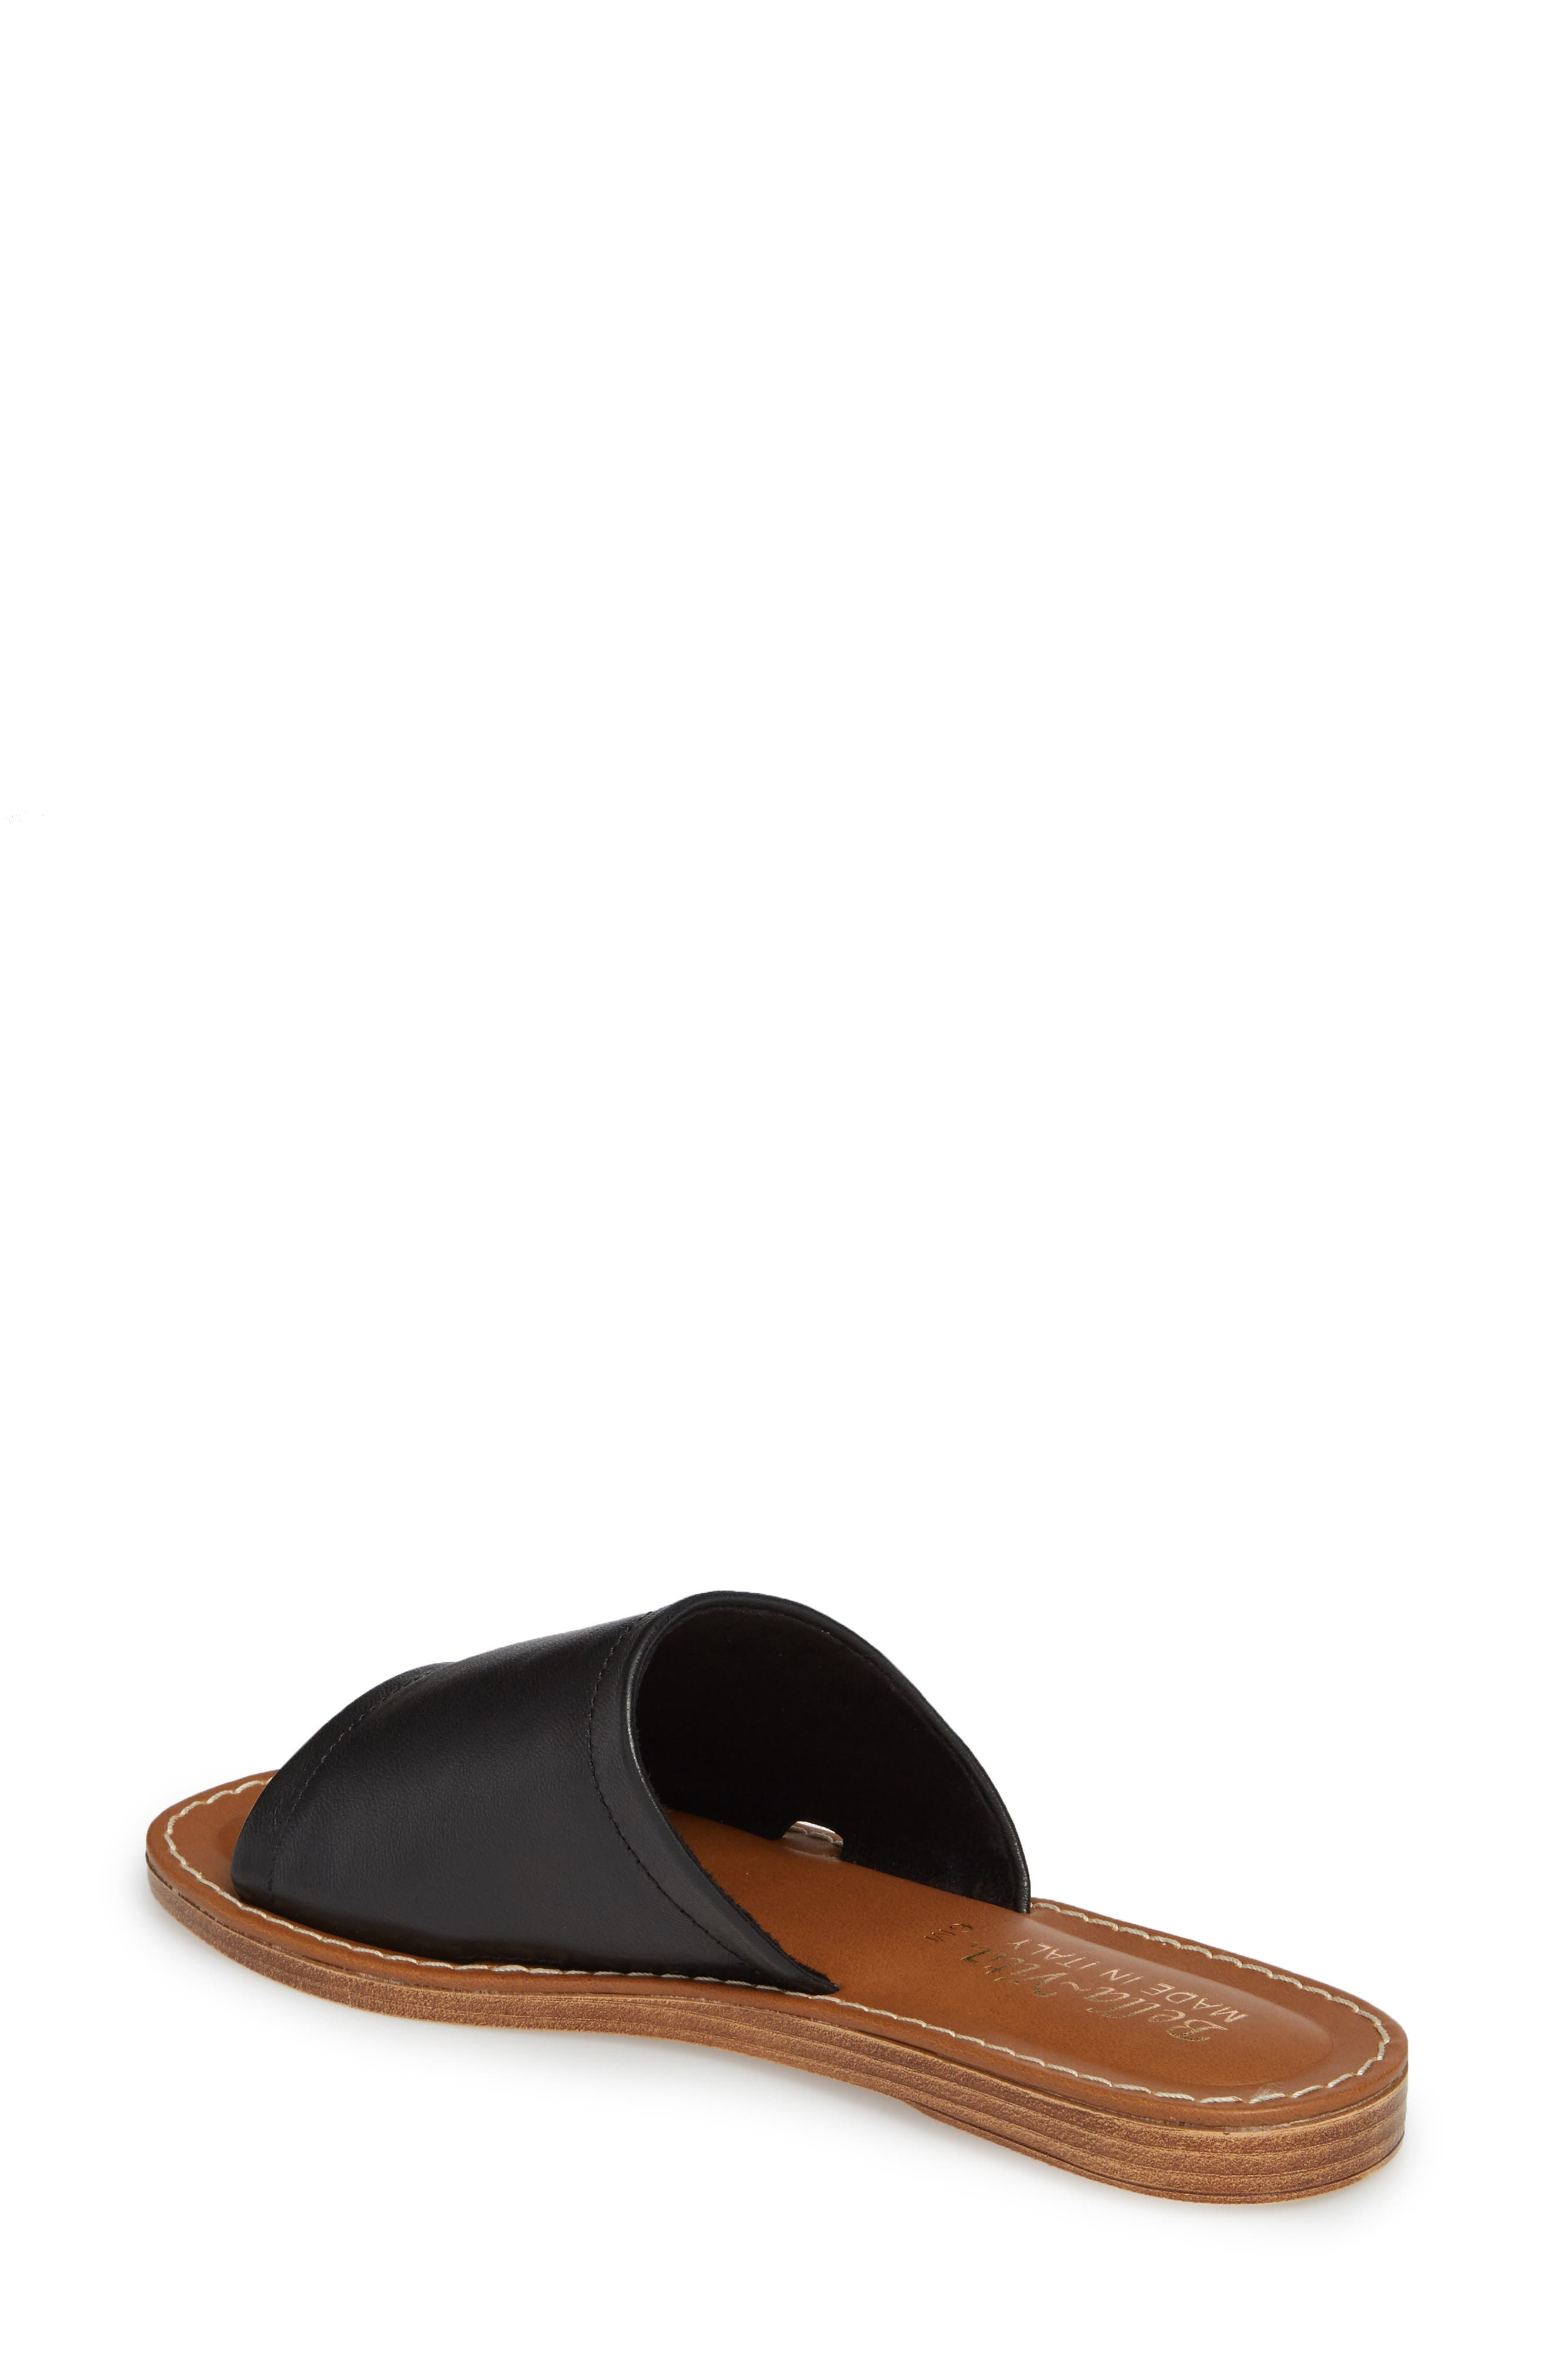 BELLA VITA, Ros Slide Sandal, Alternate thumbnail 2, color, BLACK LEATHER